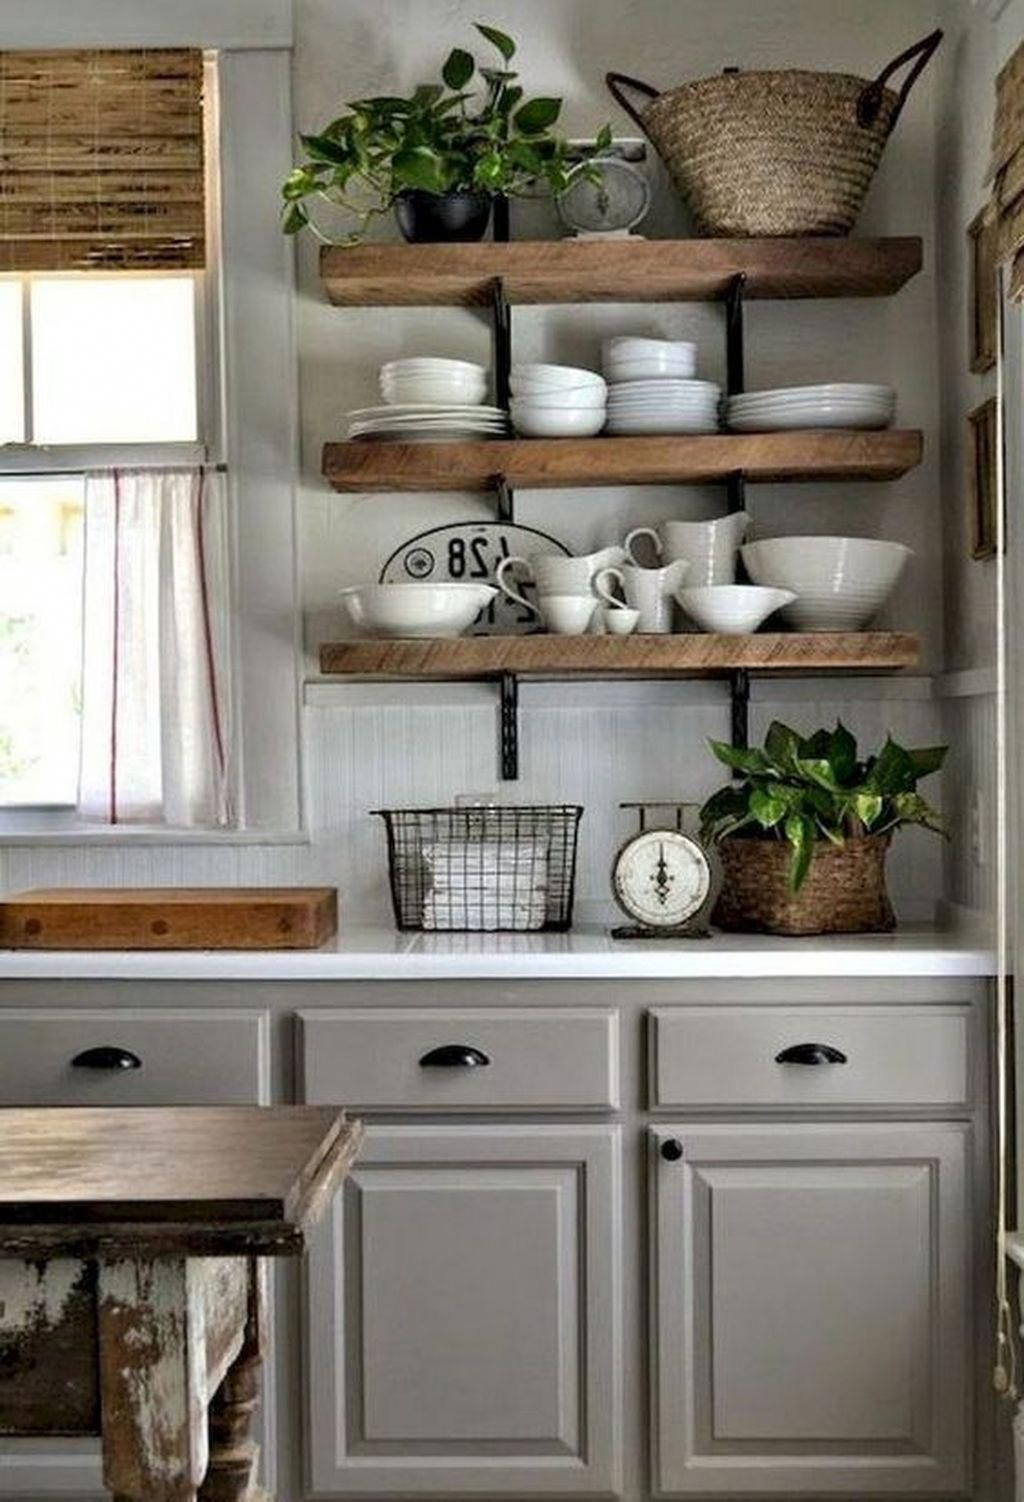 46 Inspiring Rustic Country Kitchen Ideas To Renew Your Ordinary Kitchen 38 Dreamiest Farmhouse Kitchen Decor and Design Ideas to Fuel Your Remodel